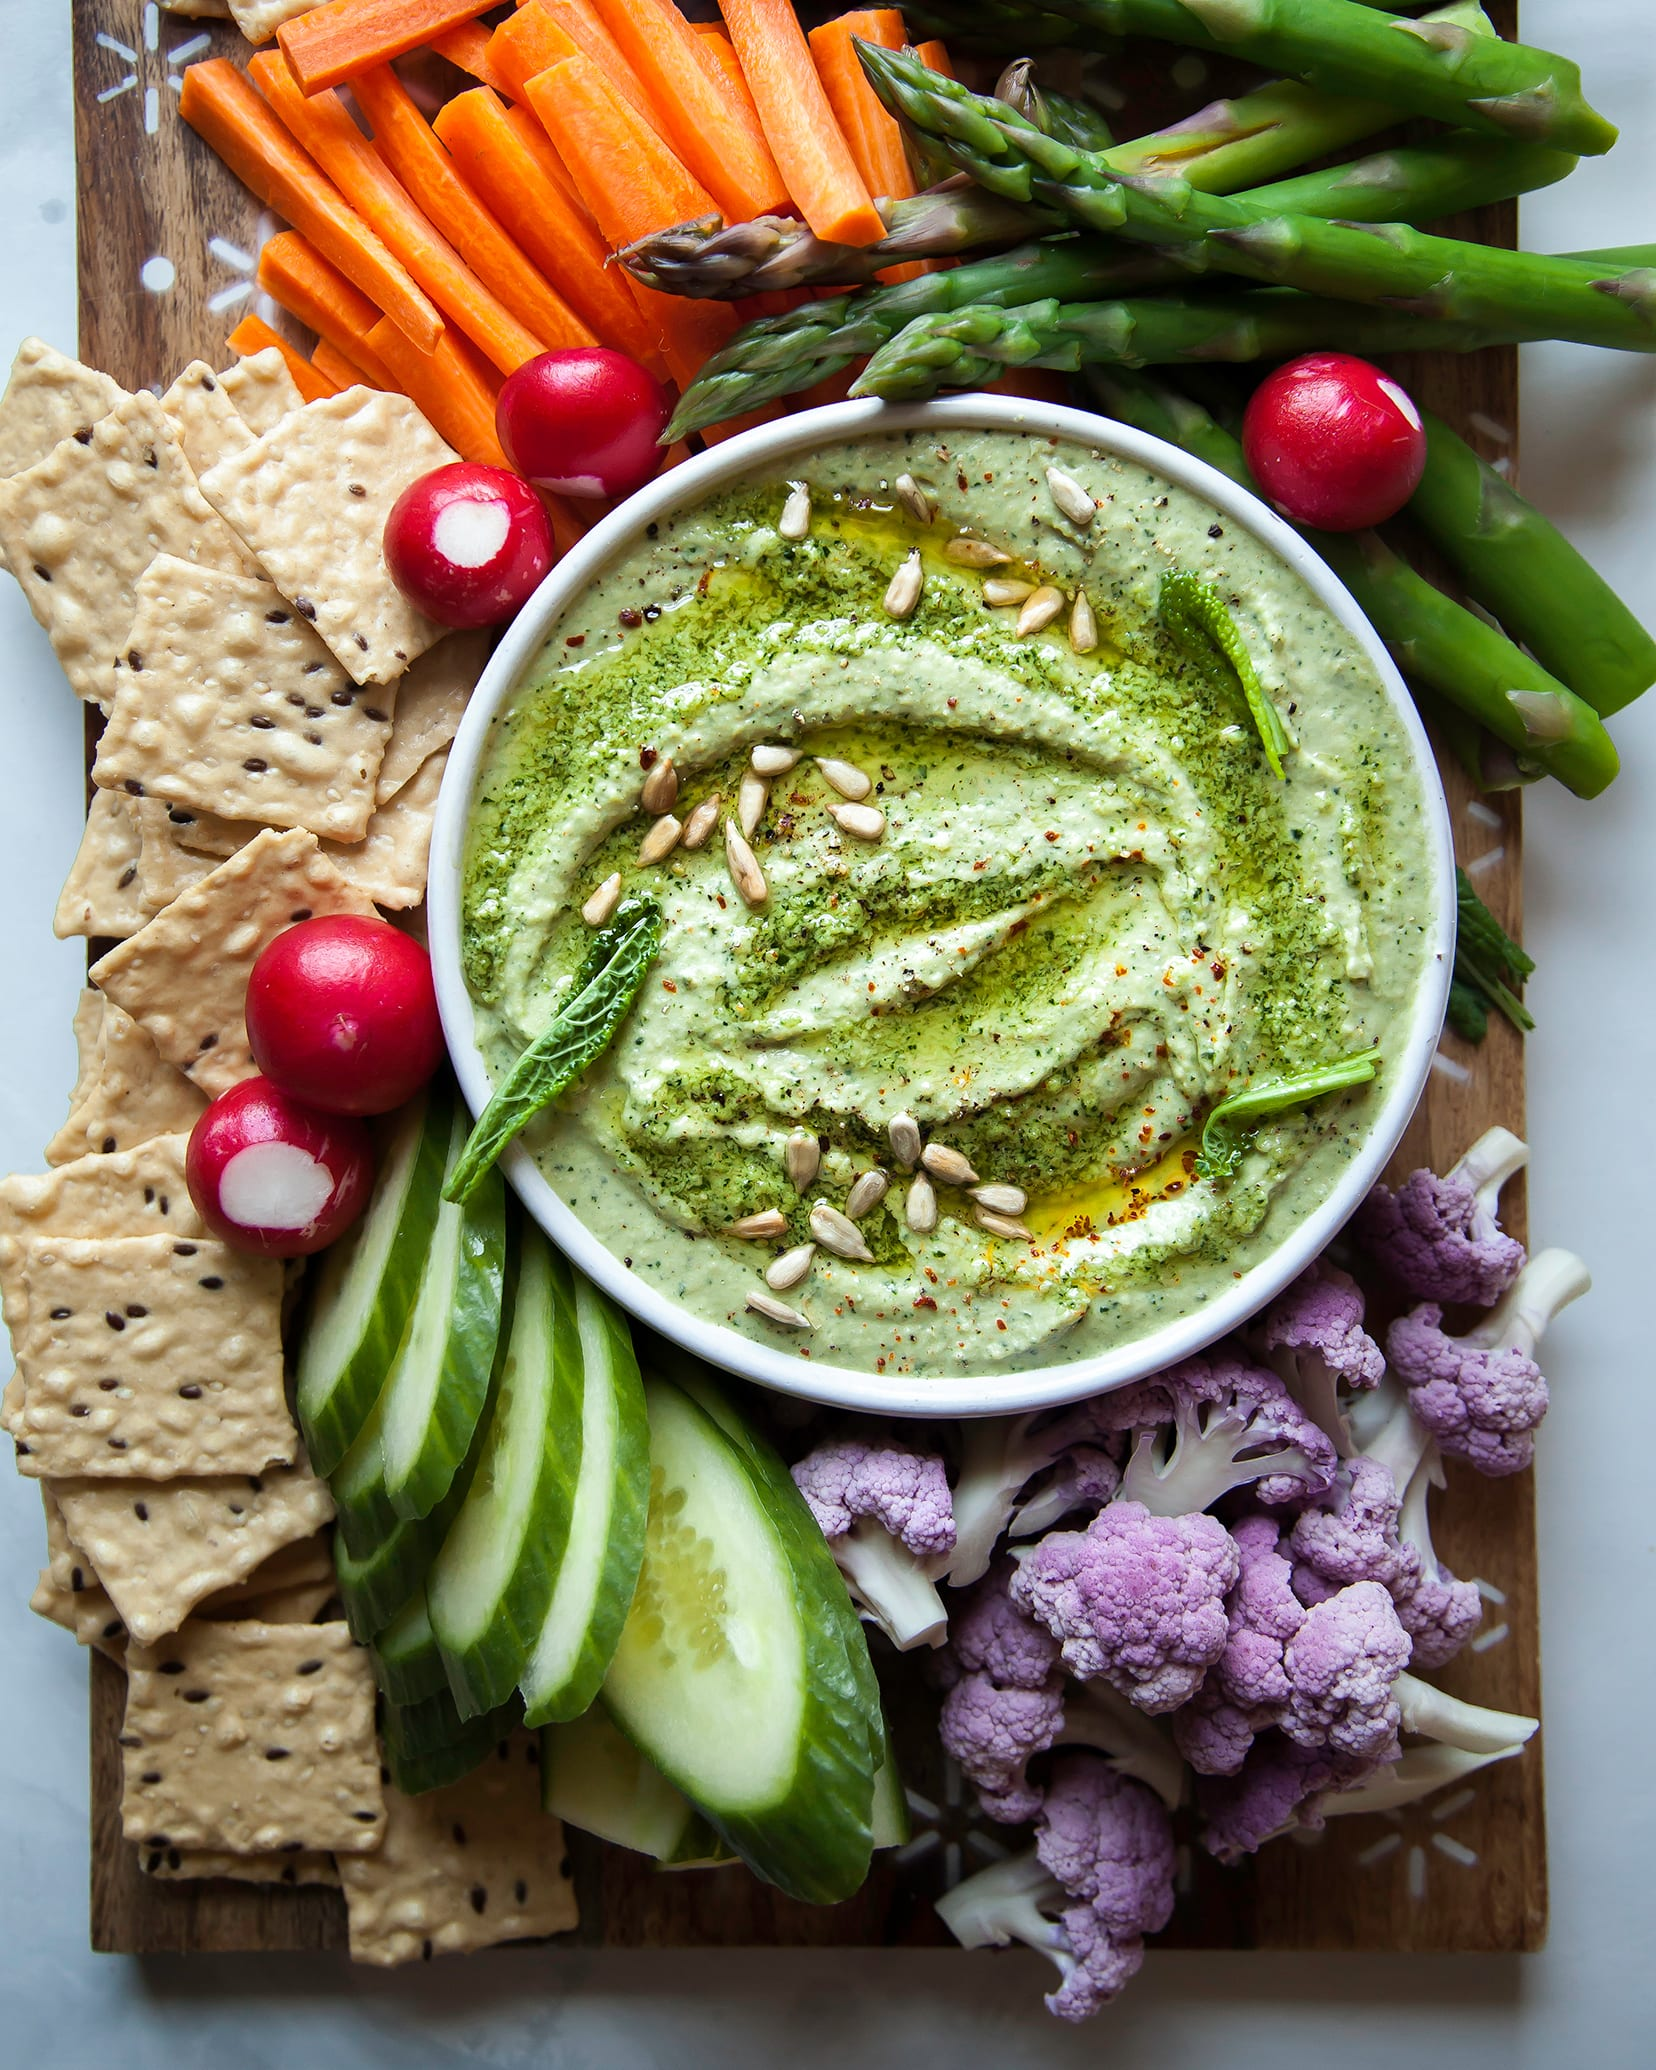 An overhead shot of a creamy light green dip with vegetables served alongside.